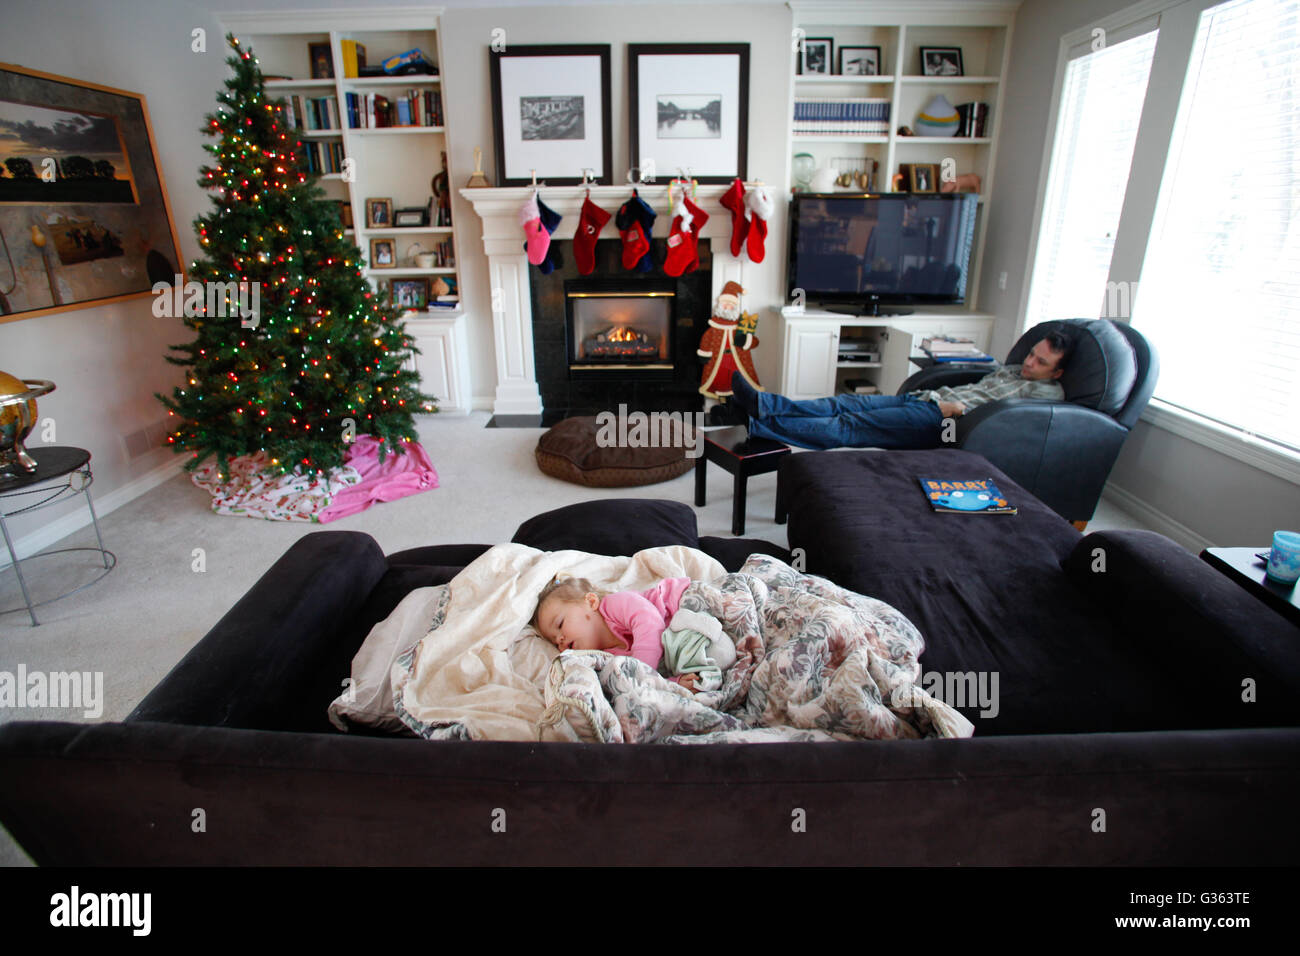 A man and a child sleep in a living room, which is decorated ...